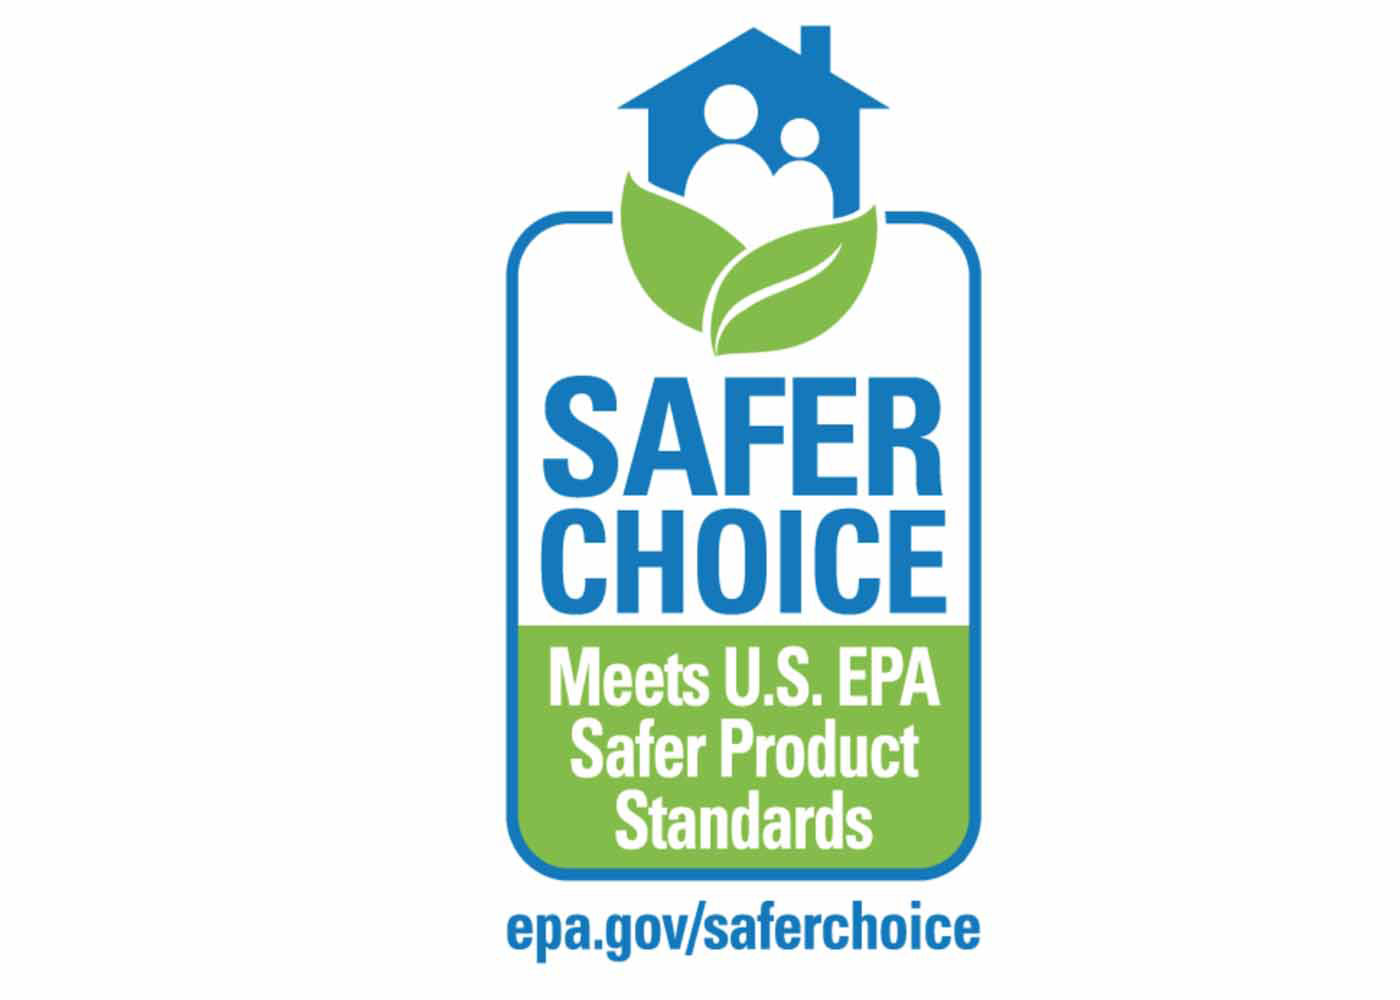 "Purchasing-Cleaning and Janitorial Supplies-Safer Choice: the logo for the United States' Environmental Protection Agency's Safer Choice label features a house with two individuals in it at the top of the icon (and said house is surrounded by two green leaves). Below, the words ""Safer Choice: Meets U.S. EPA Safer Product Standards"" reads. Also, a link to the EPA's Safer Choice webpage is included within this logo."